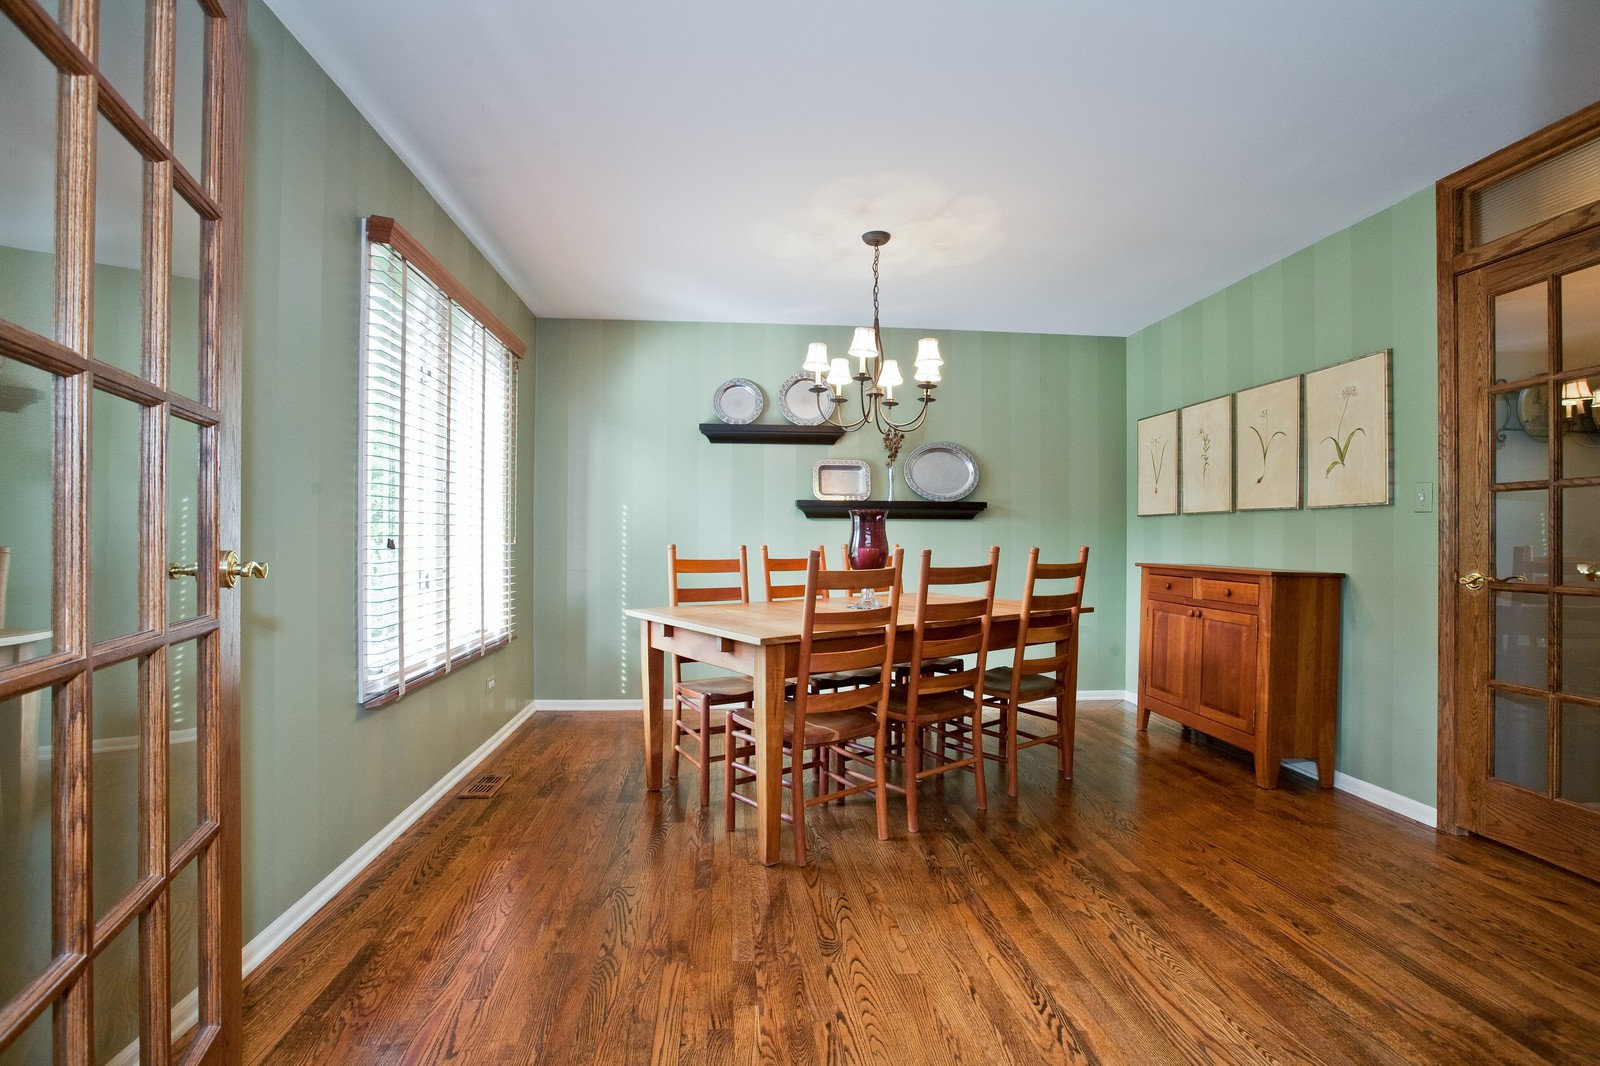 Real Estate Photography - 1031 W. 119th St, Lemont, IL, 60439 - Dining Room